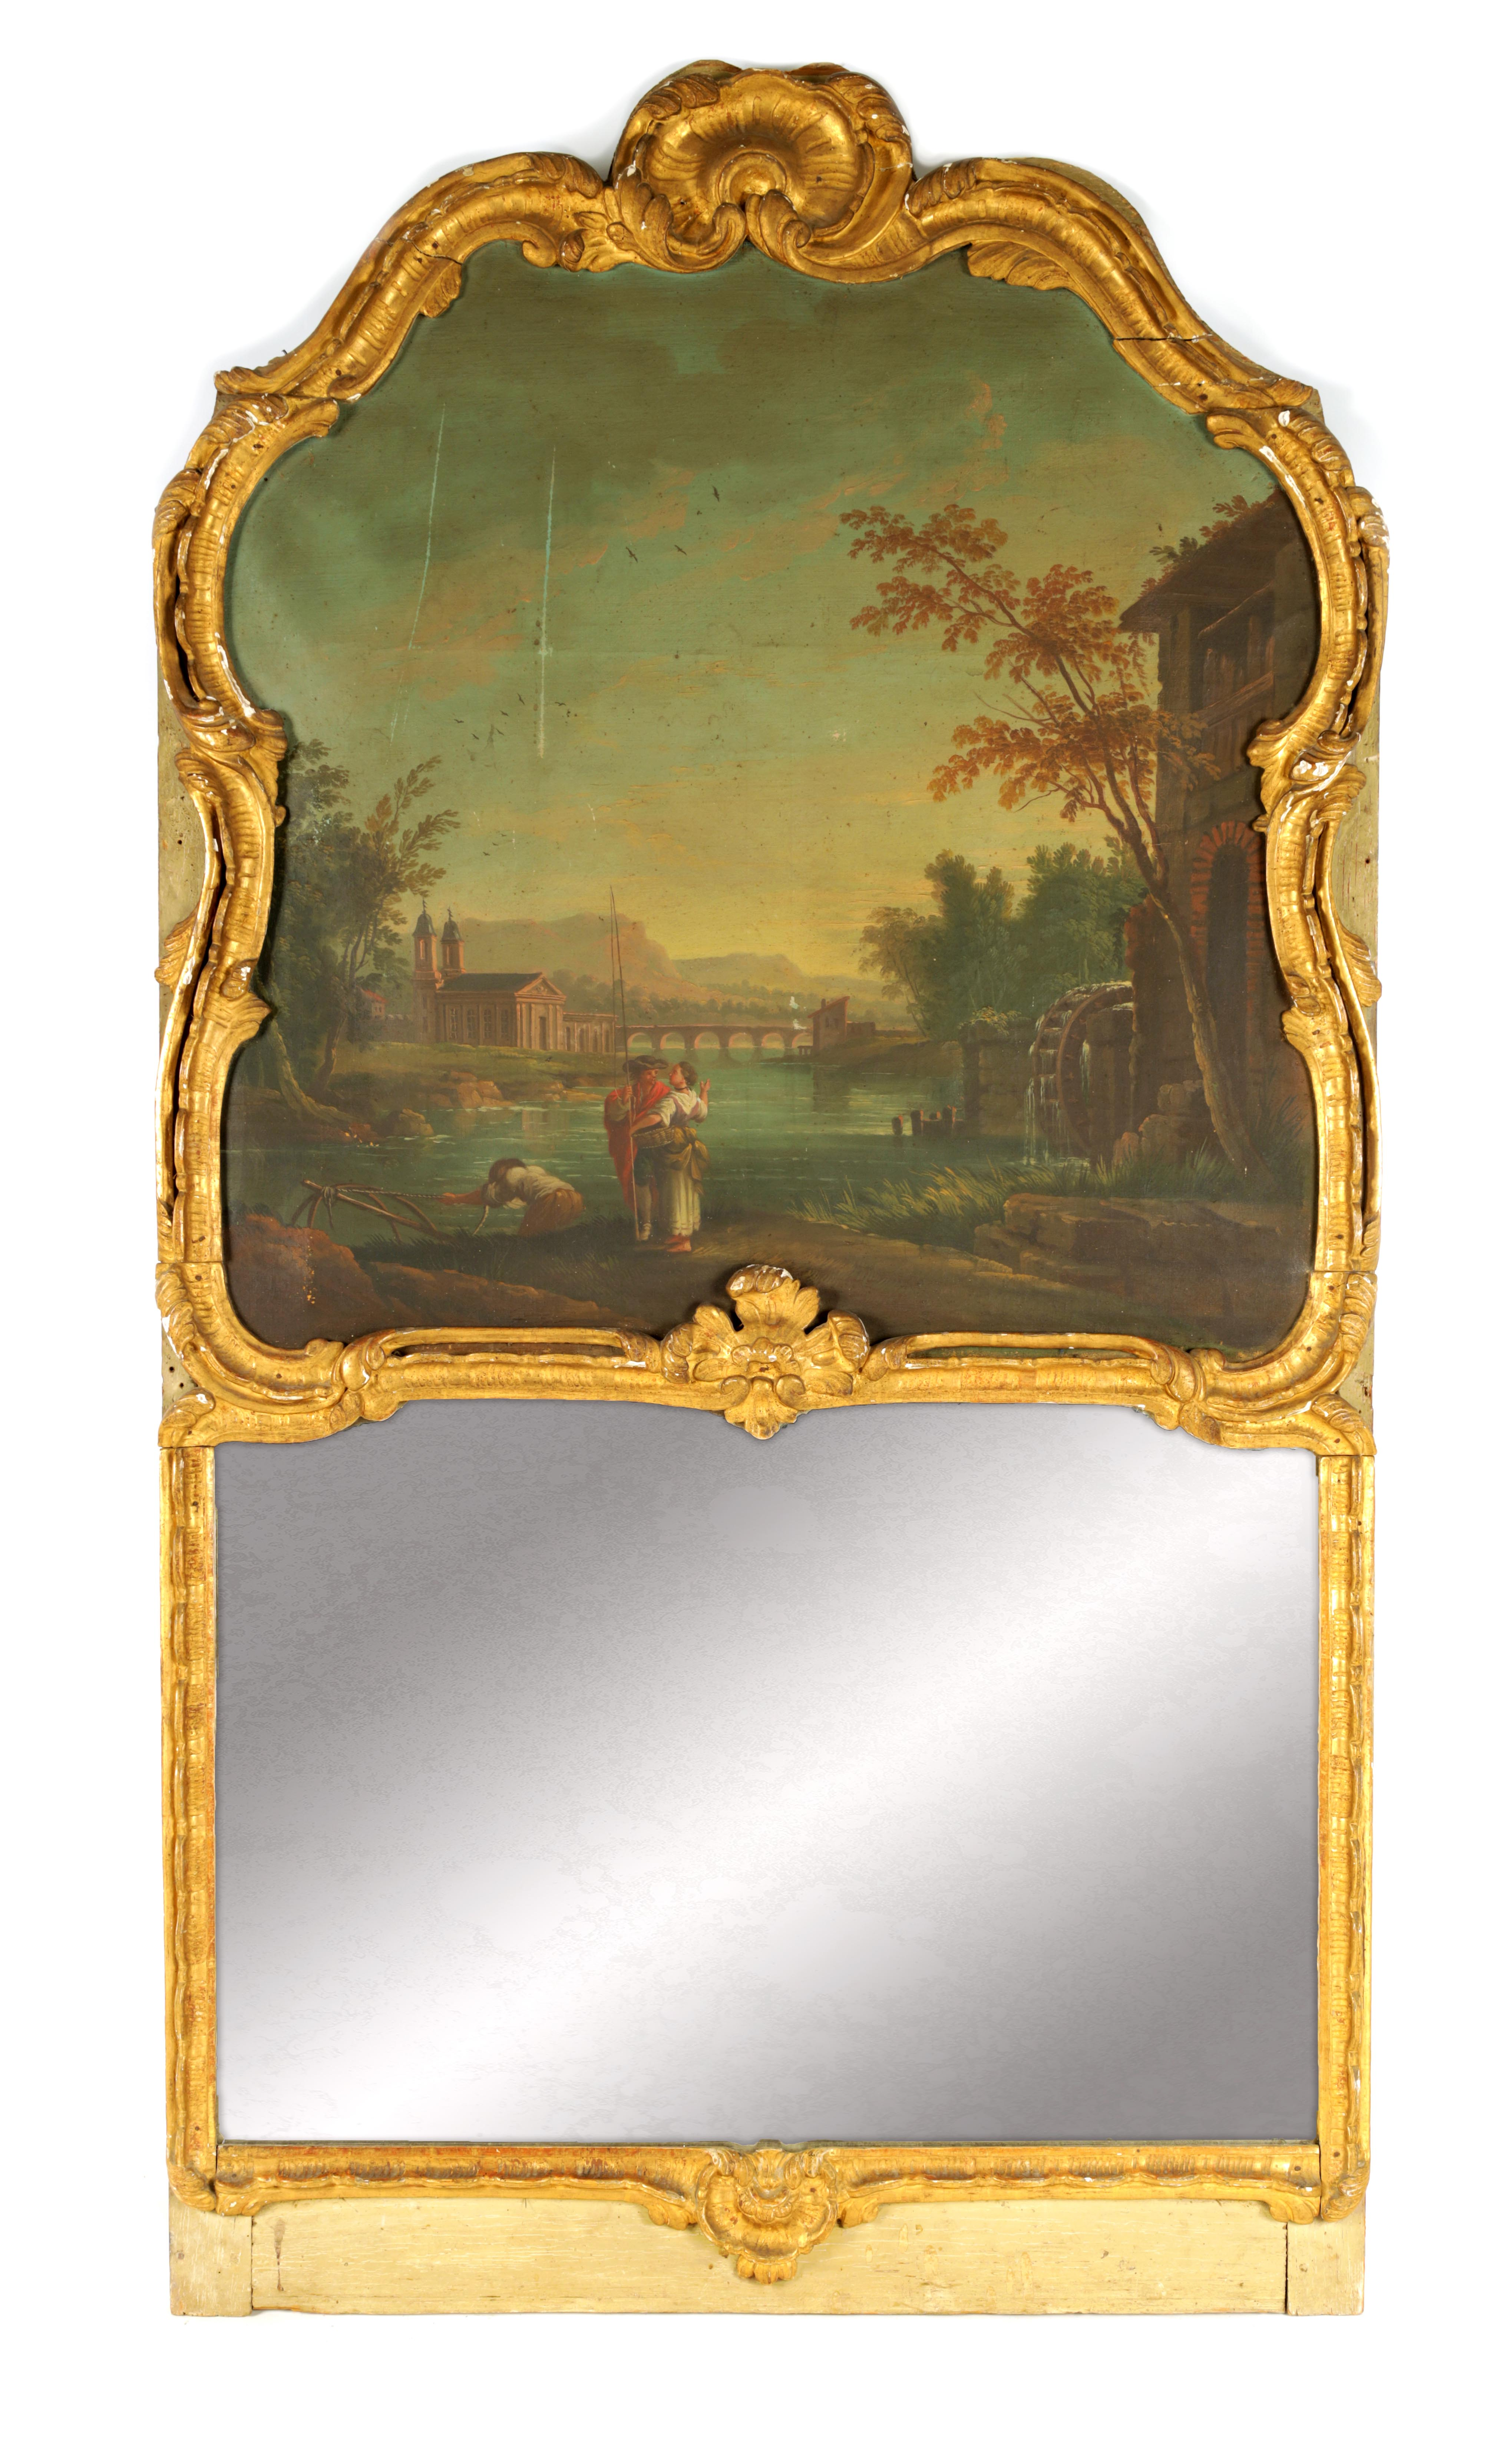 AN EARLY 18TH CENTURY CONTINENTAL GILTWOOD ROCOCO STYLE PIER MIRROR with leaf work carved frame